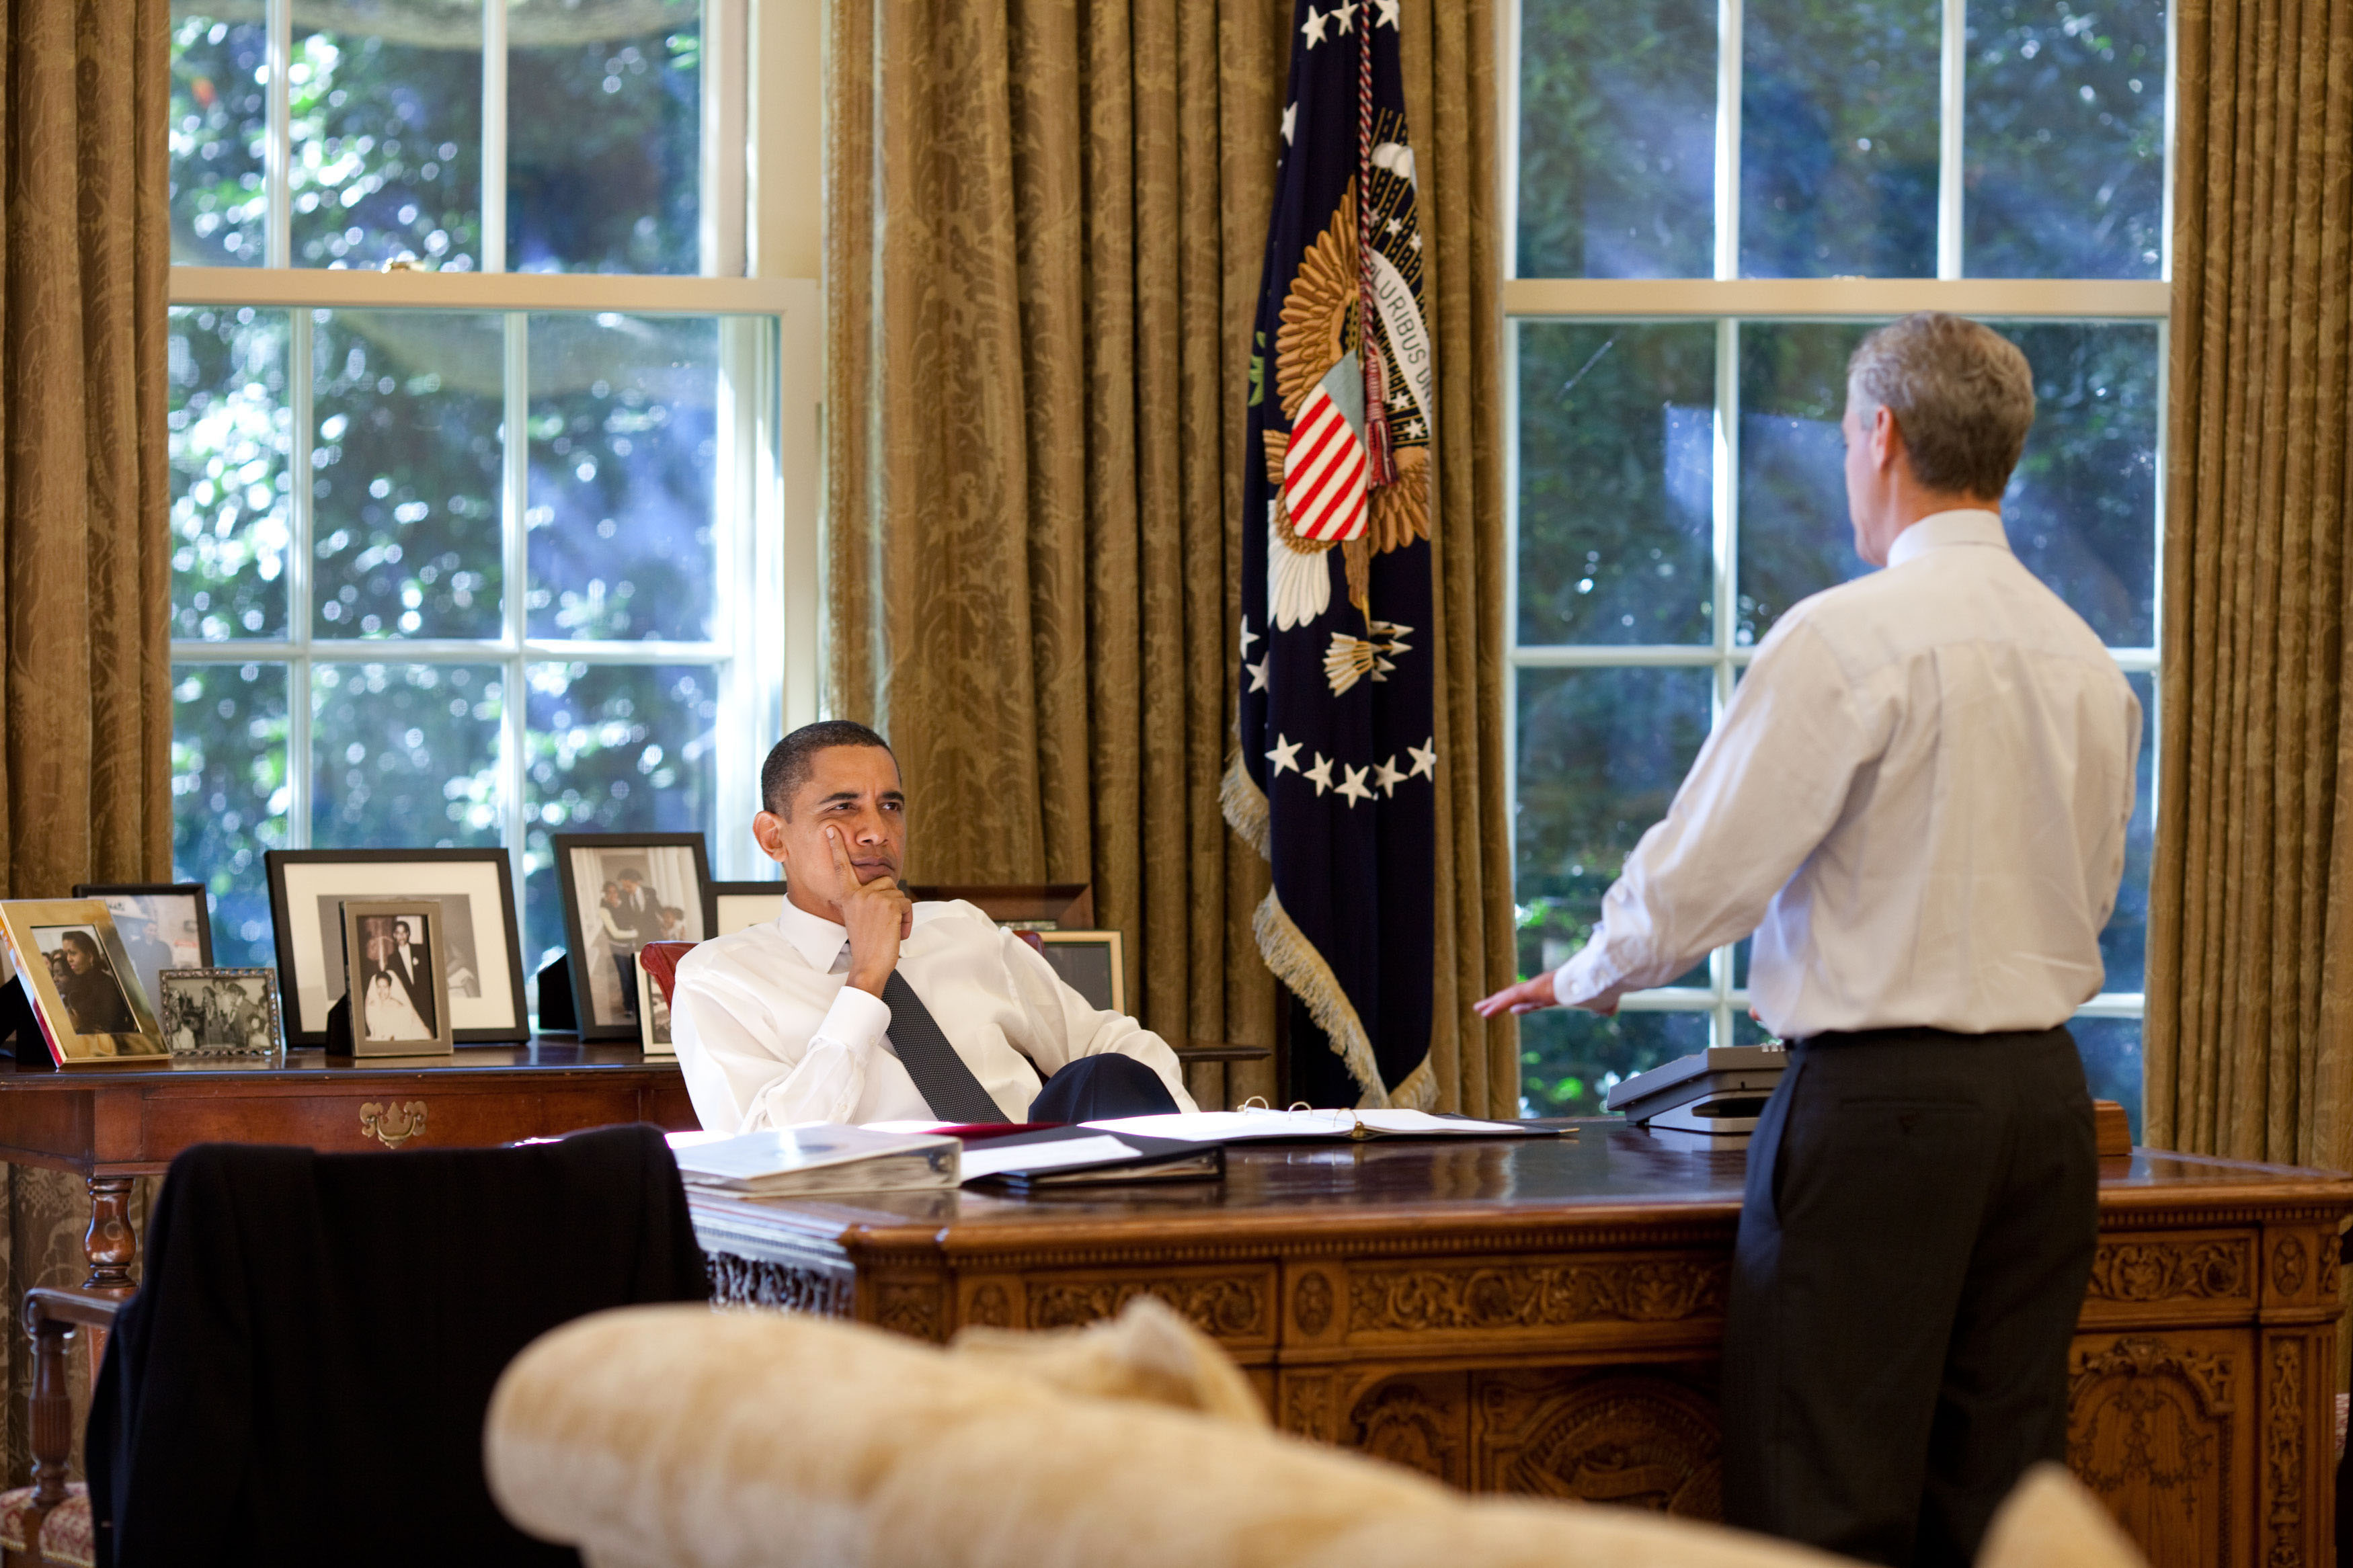 obamas oval office. File:Barack Obama And Rahm Emanuel In The Oval Office 10-2009.jpg Obamas